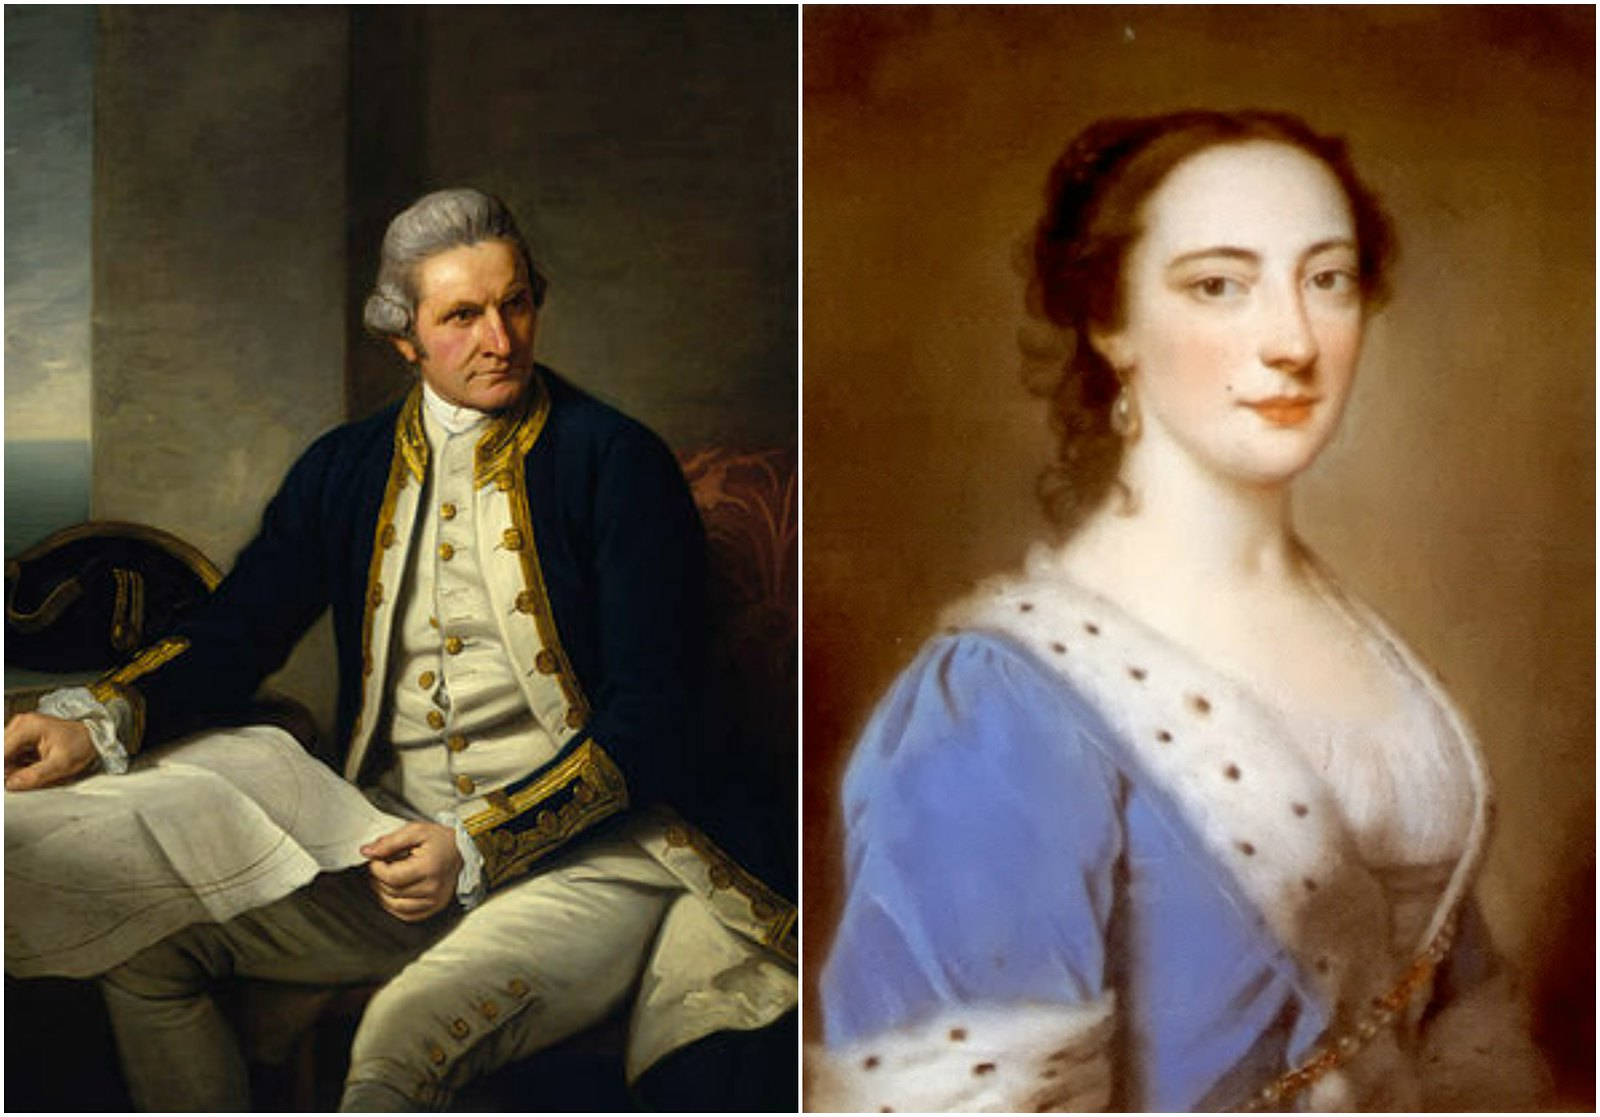 Captain James Cook by Nathaniel Dance-Holland. Mary Howard, Duchess of Norfolk by James Hoare